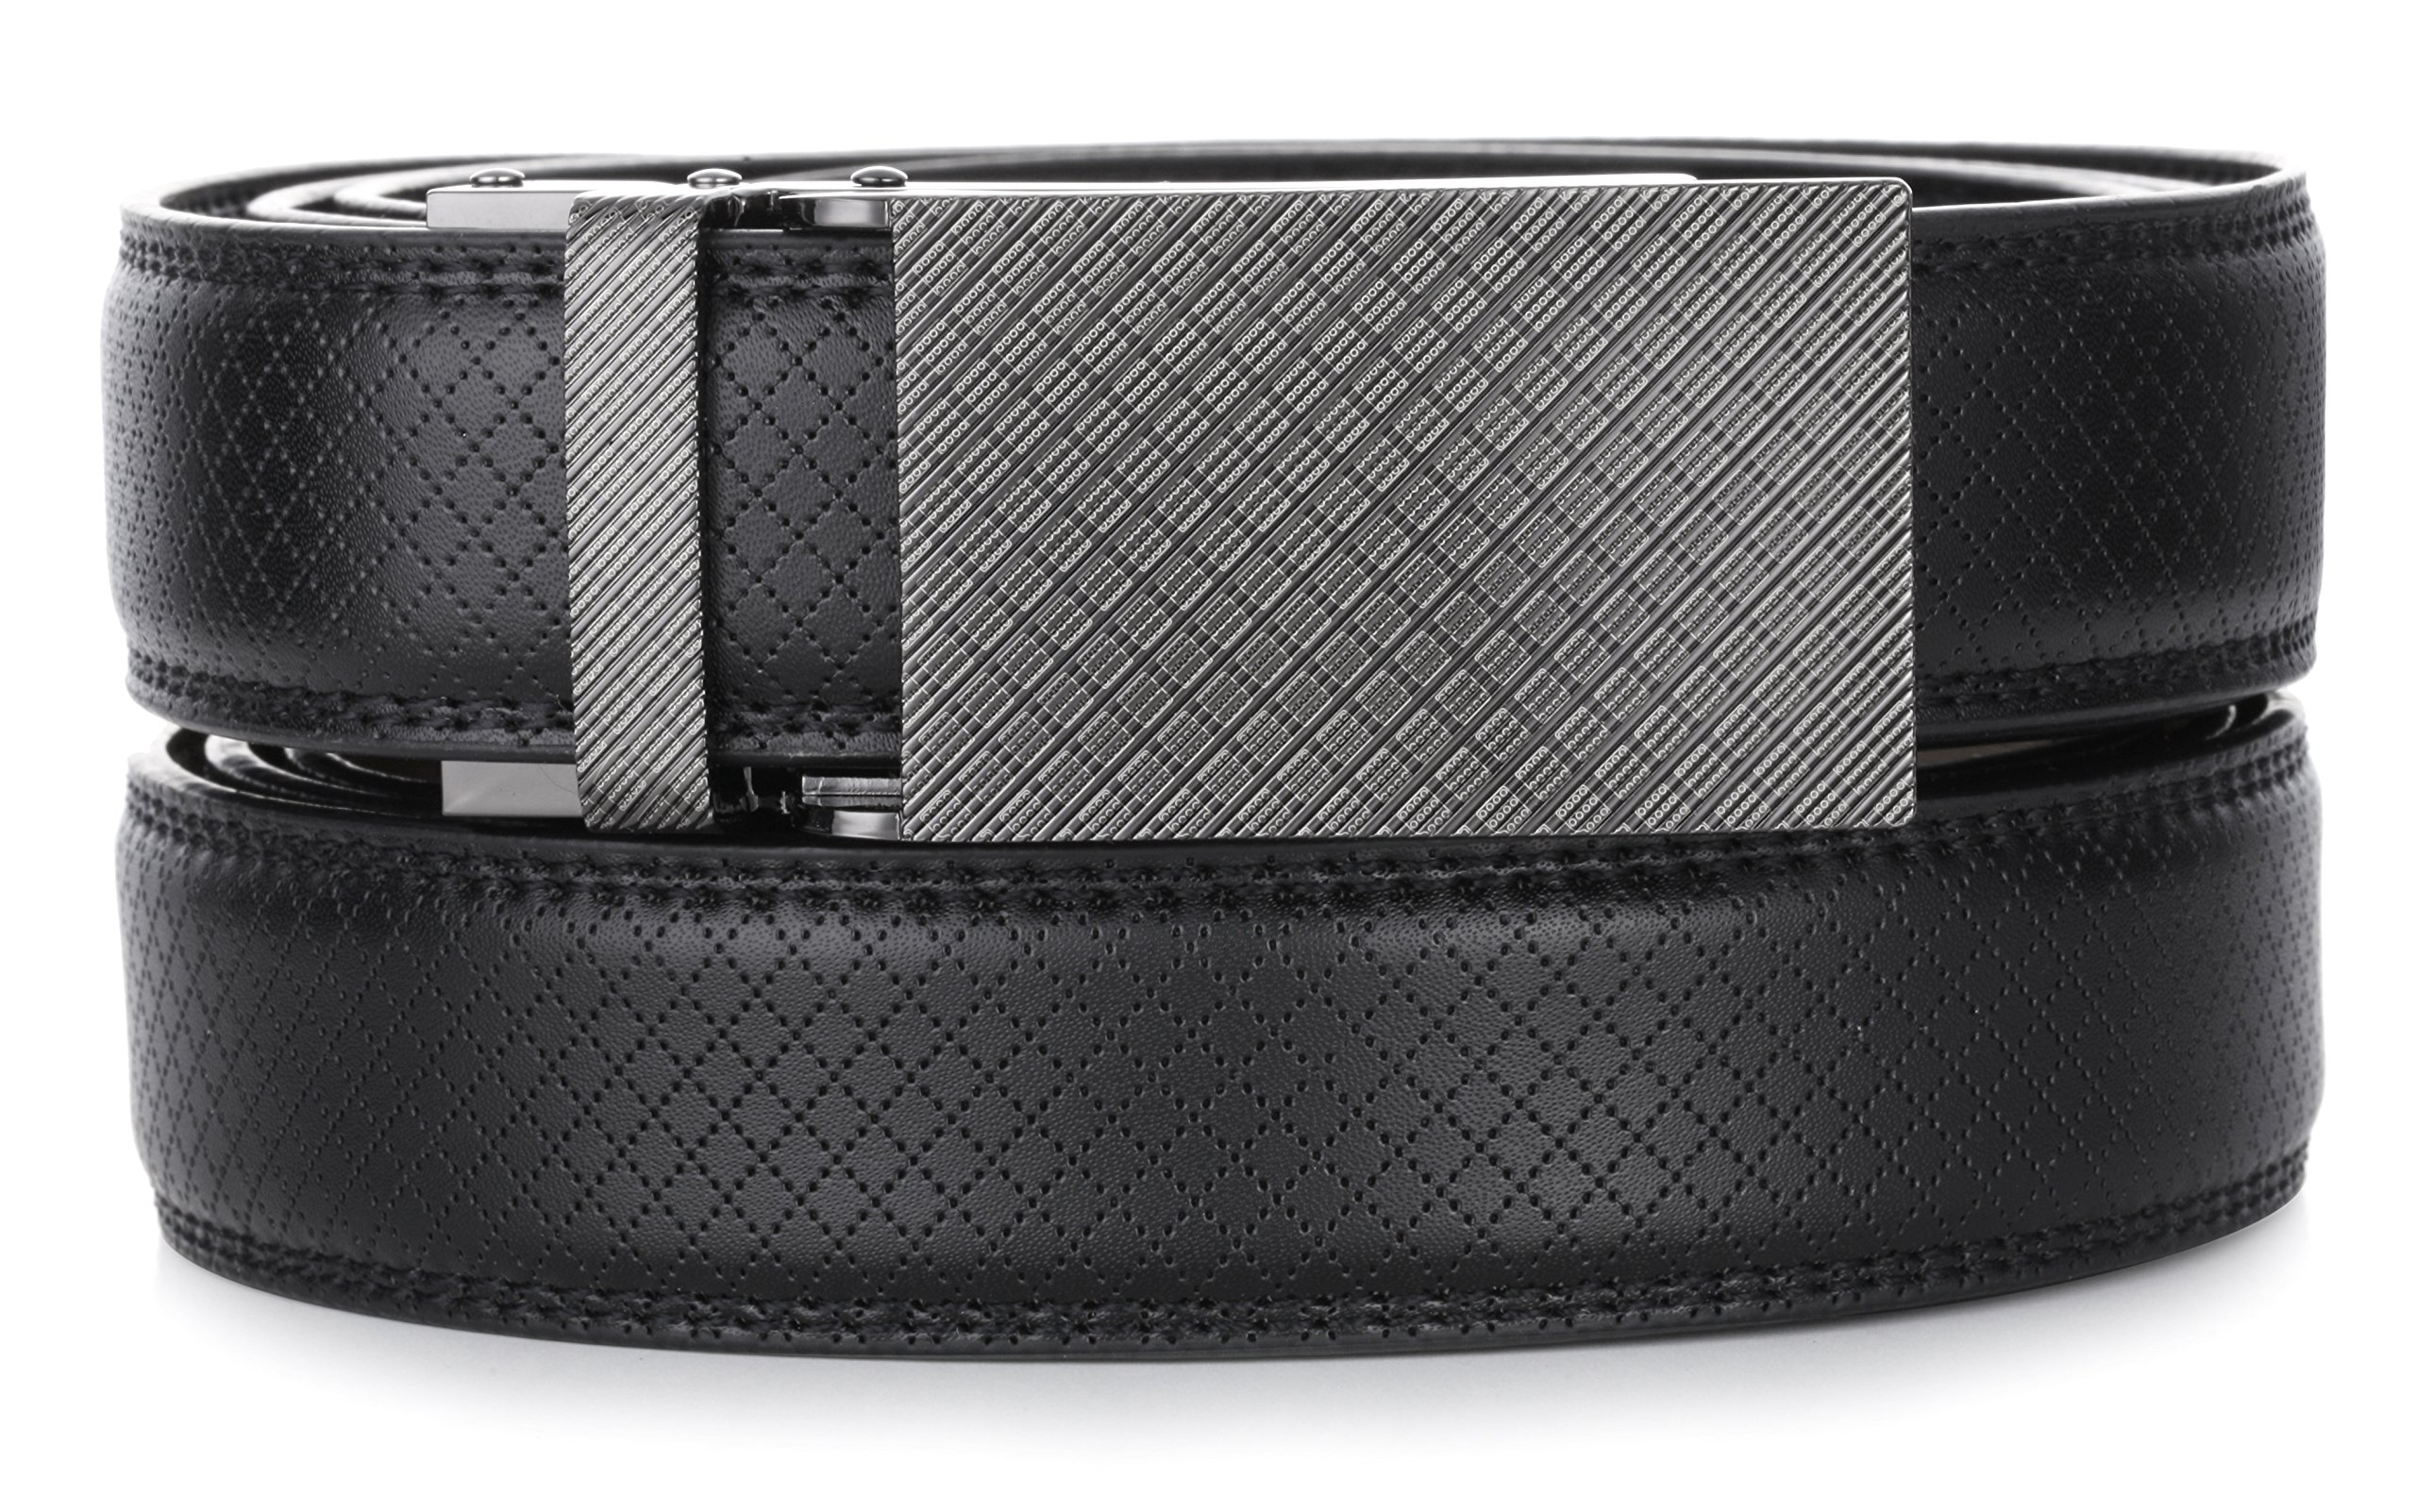 Gallery Seven Leather RatchetBelt For Men - Adjustable Click Belt - Black - Style 11 - Adjustable from 28'' to 44'' Waist by Gallery Seven (Image #6)